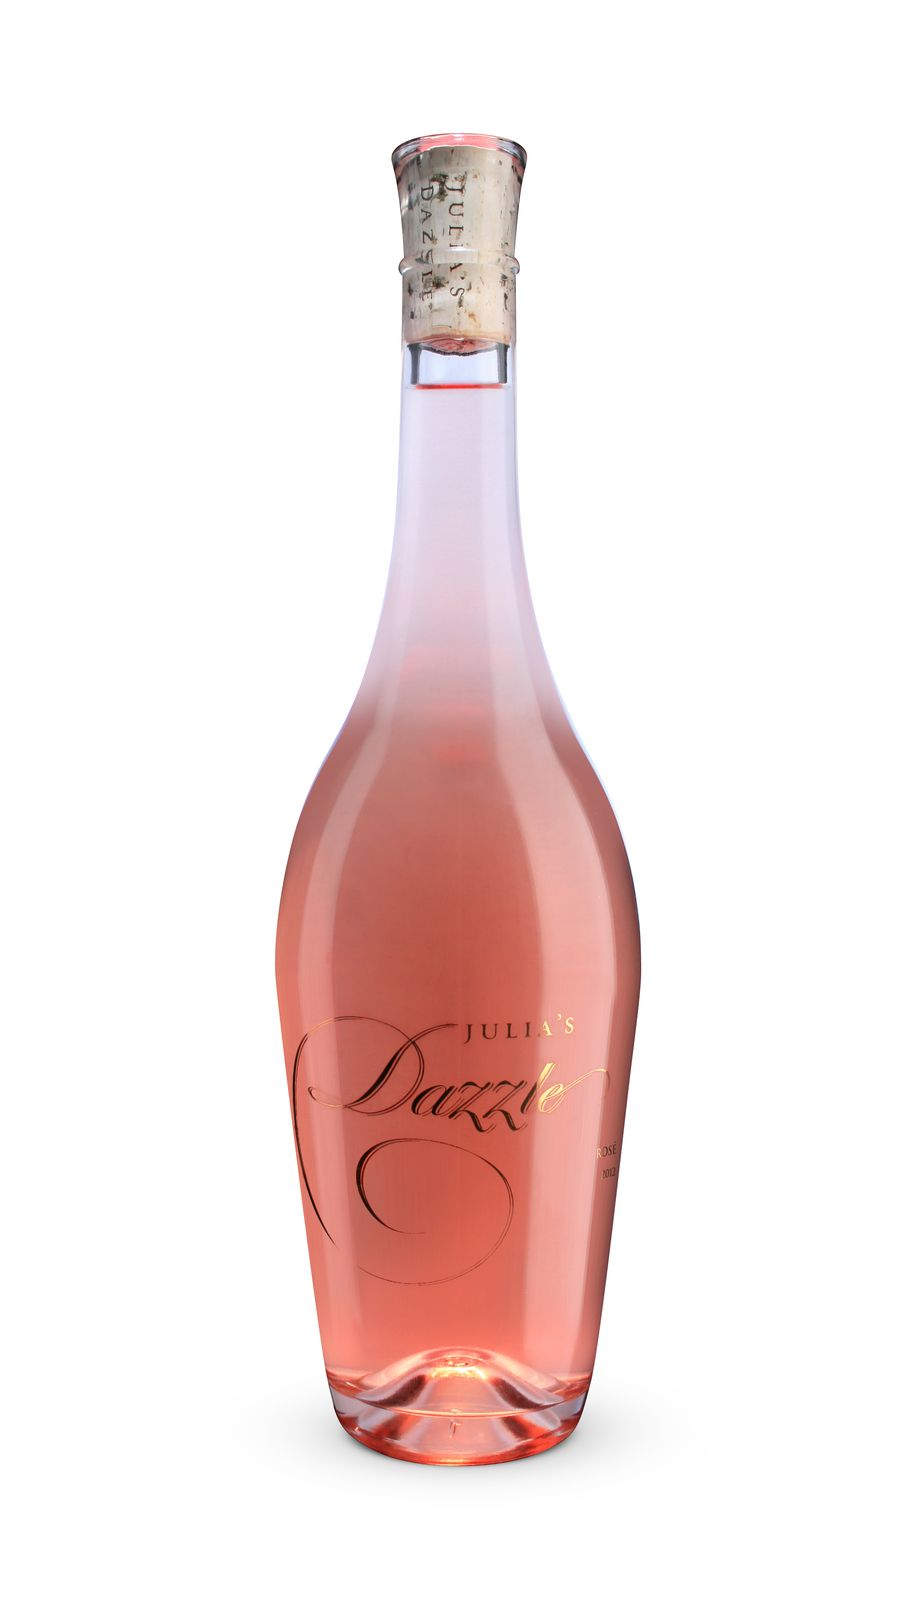 Sean Sullivan S Wine Of The Week Julia S Dazzle Rose Wine Unique Wine Bottles Washington Wines